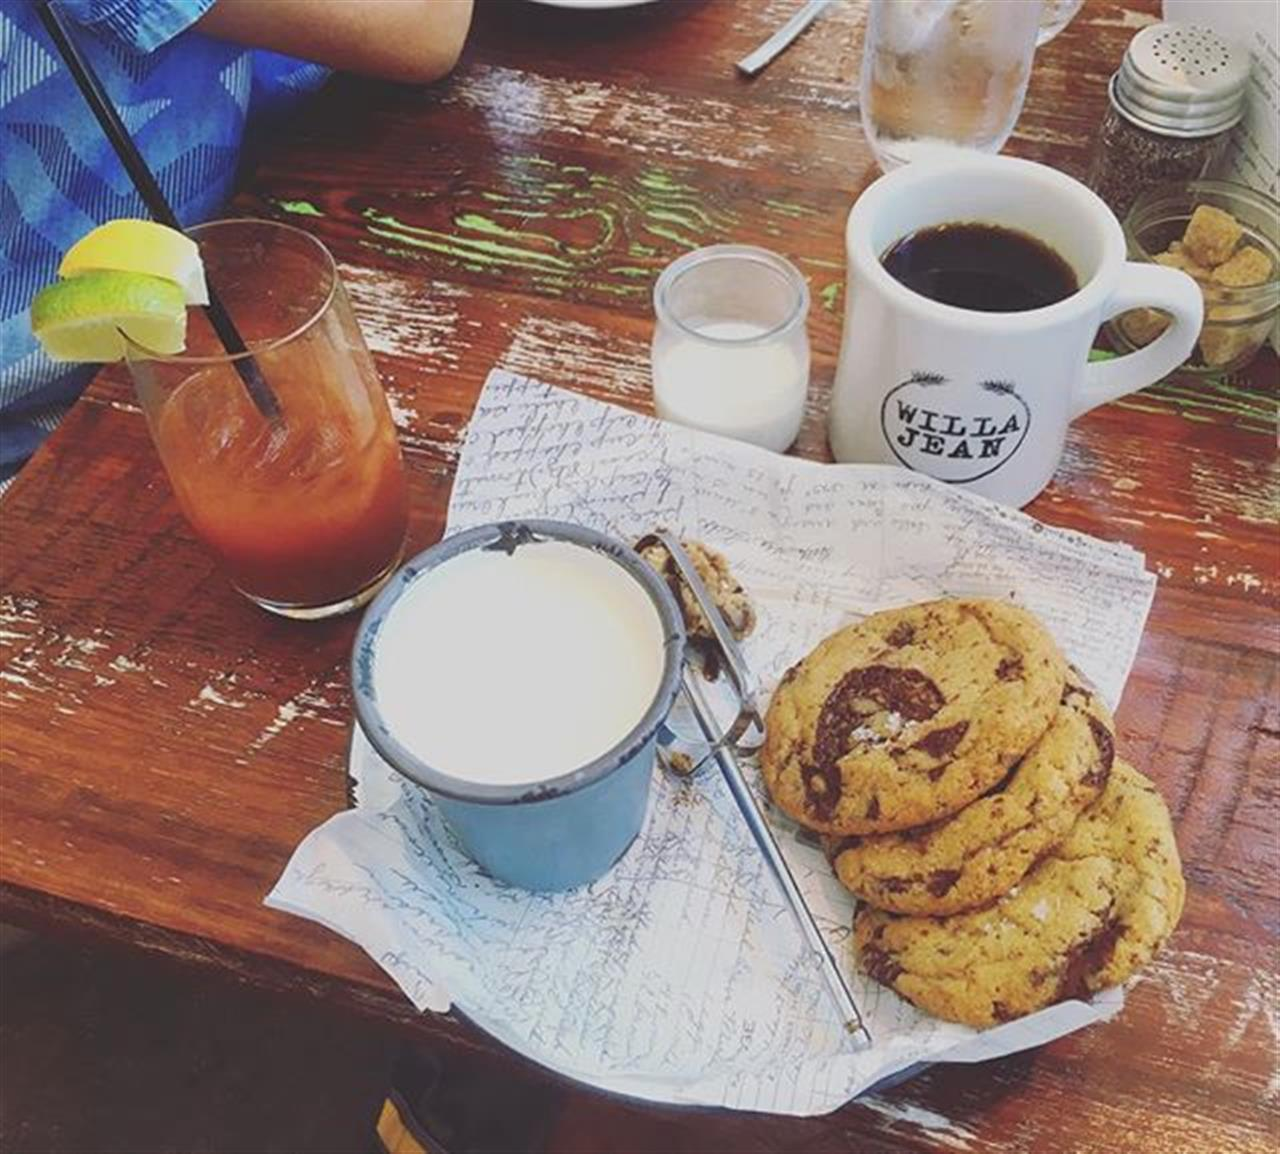 Bloody Mary, coffee, and milk 'n cookies. Just your standard ending to brunch!